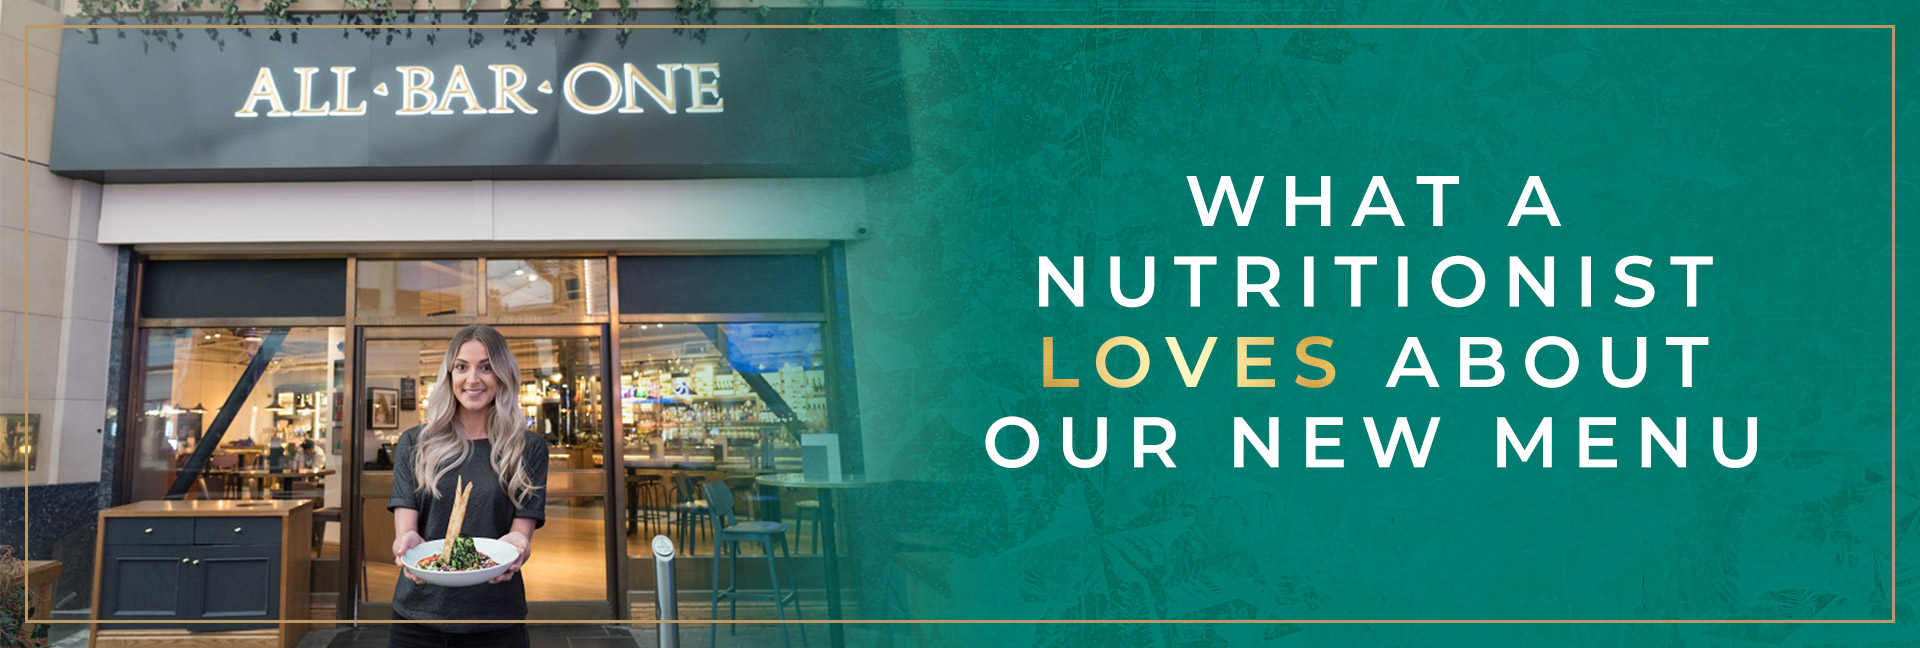 What a nutritionist loves about our new menu